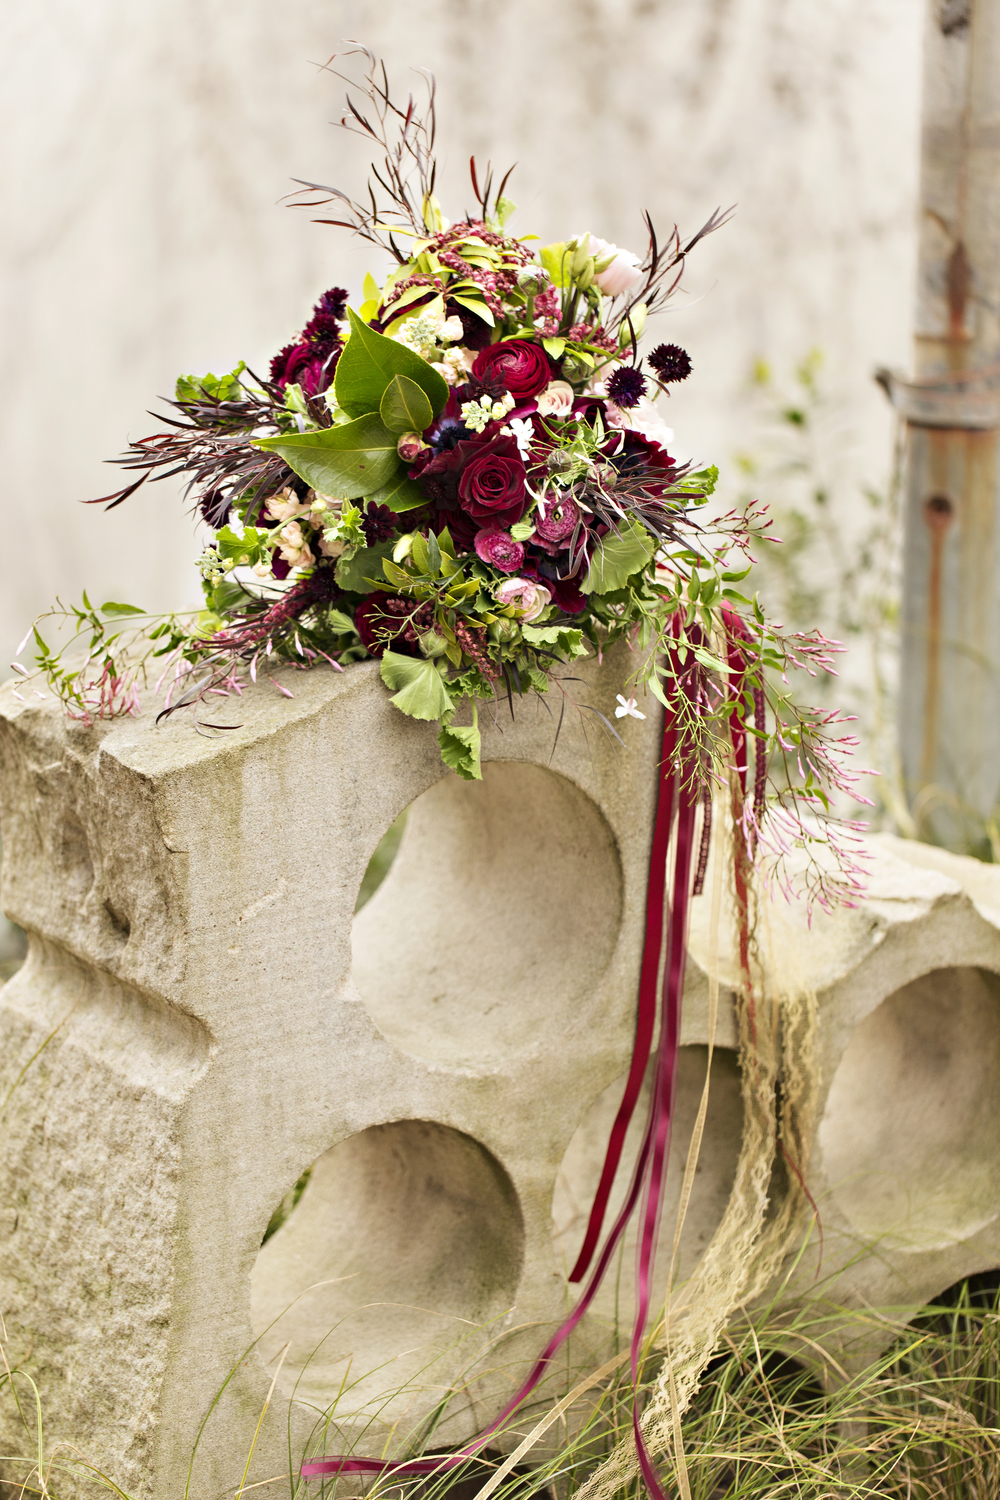 February - Burgundy and Gold styled shoot published on  Burnett's Boards  -Check out the vendors who made this shoot possible they're AMAZING!